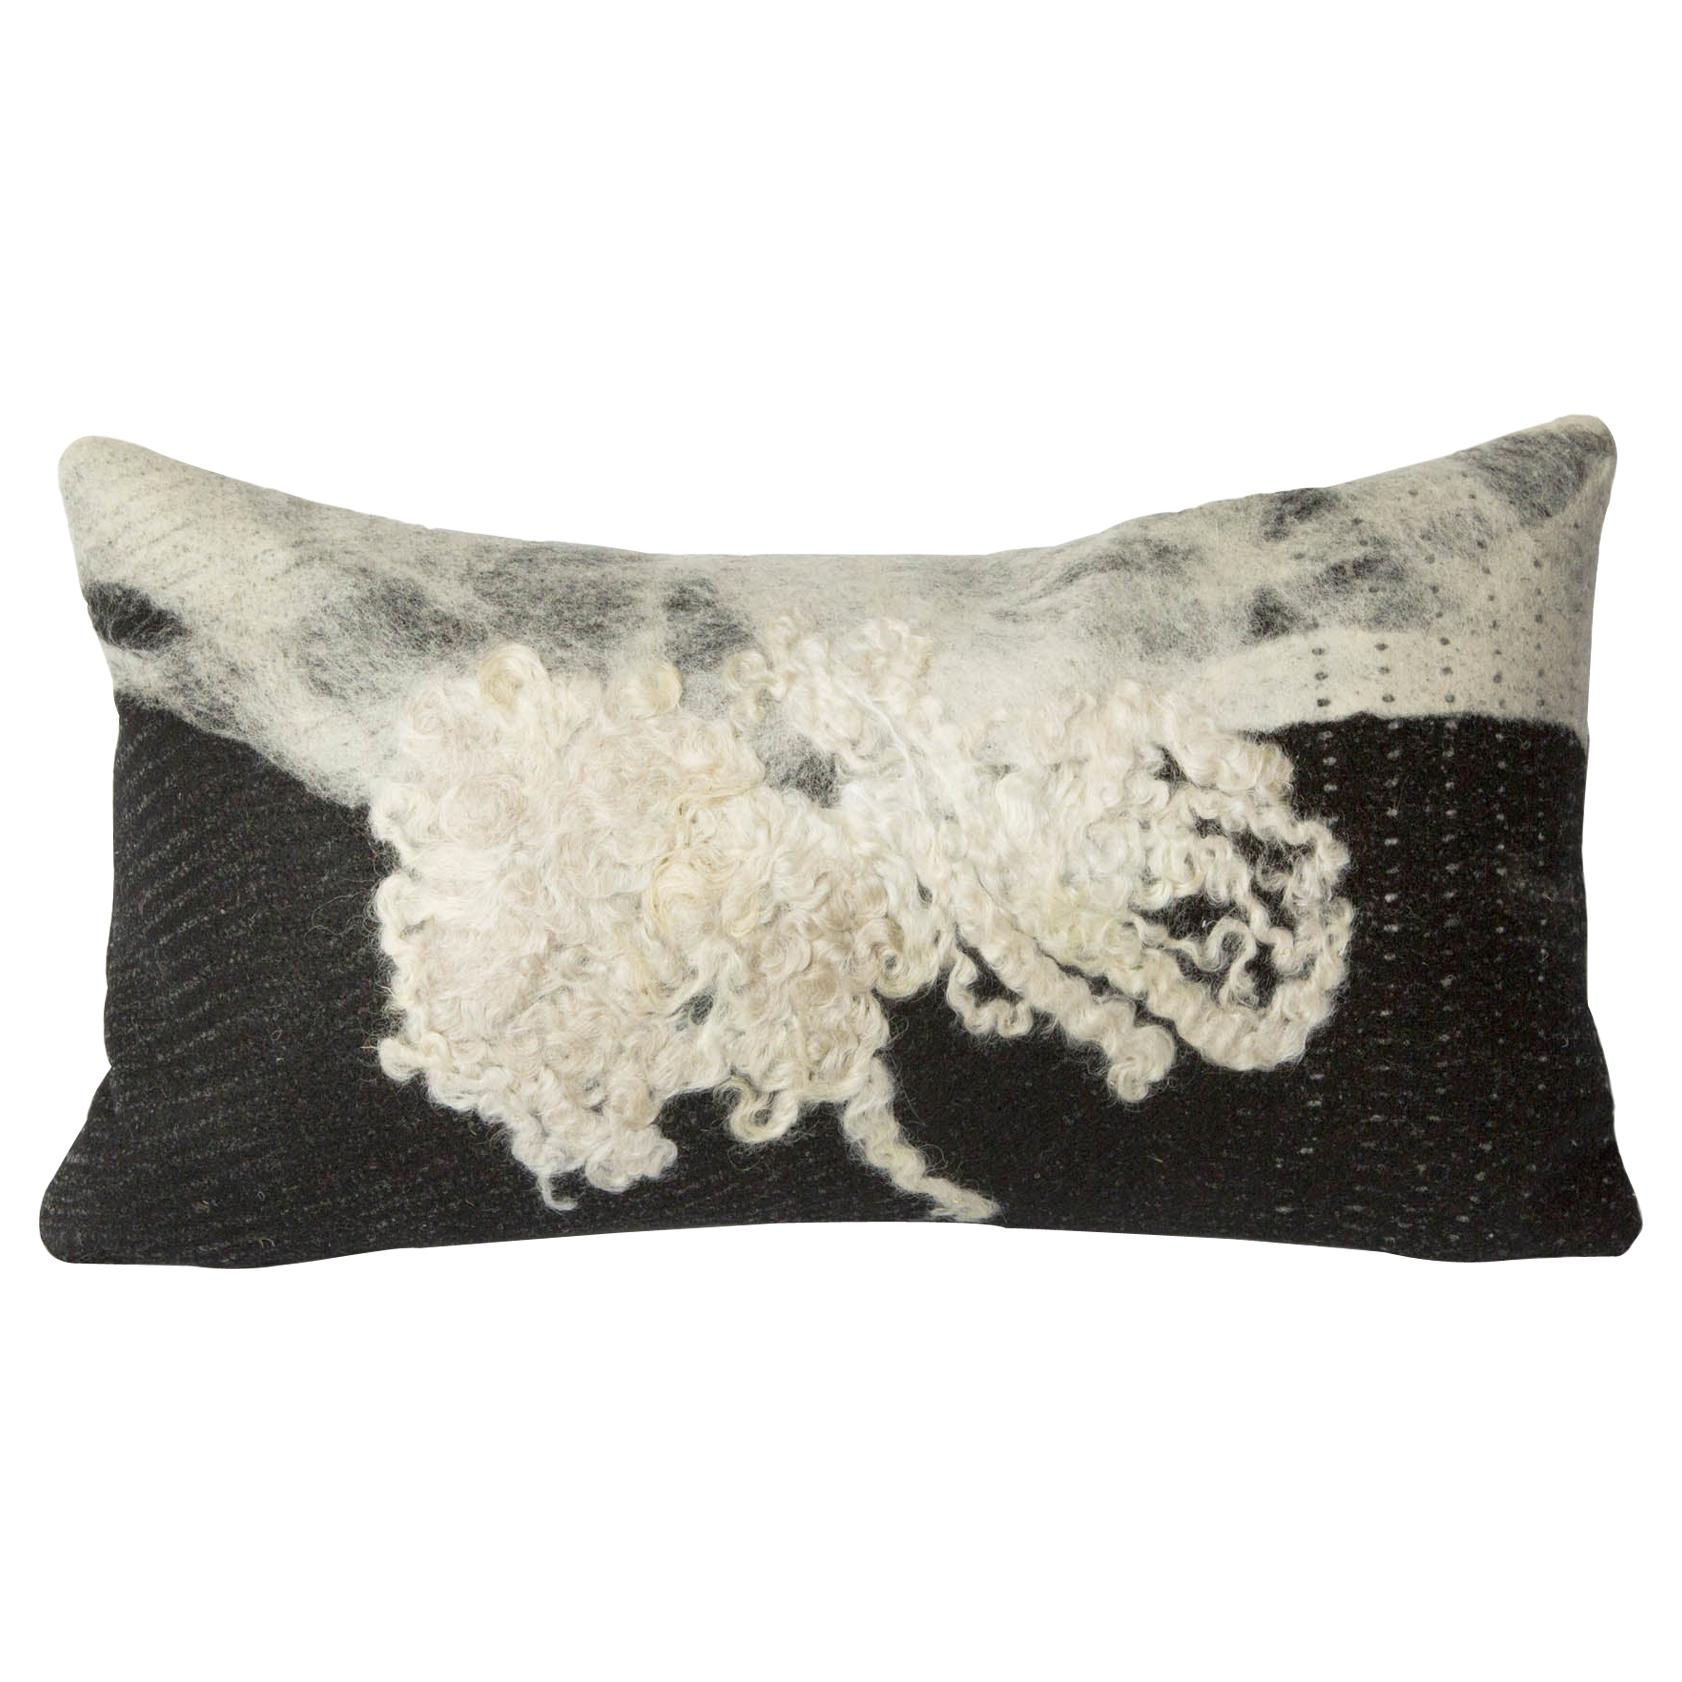 Felted Wool B&W Wensleydale Pillow, Small, Heritage Sheep Collection